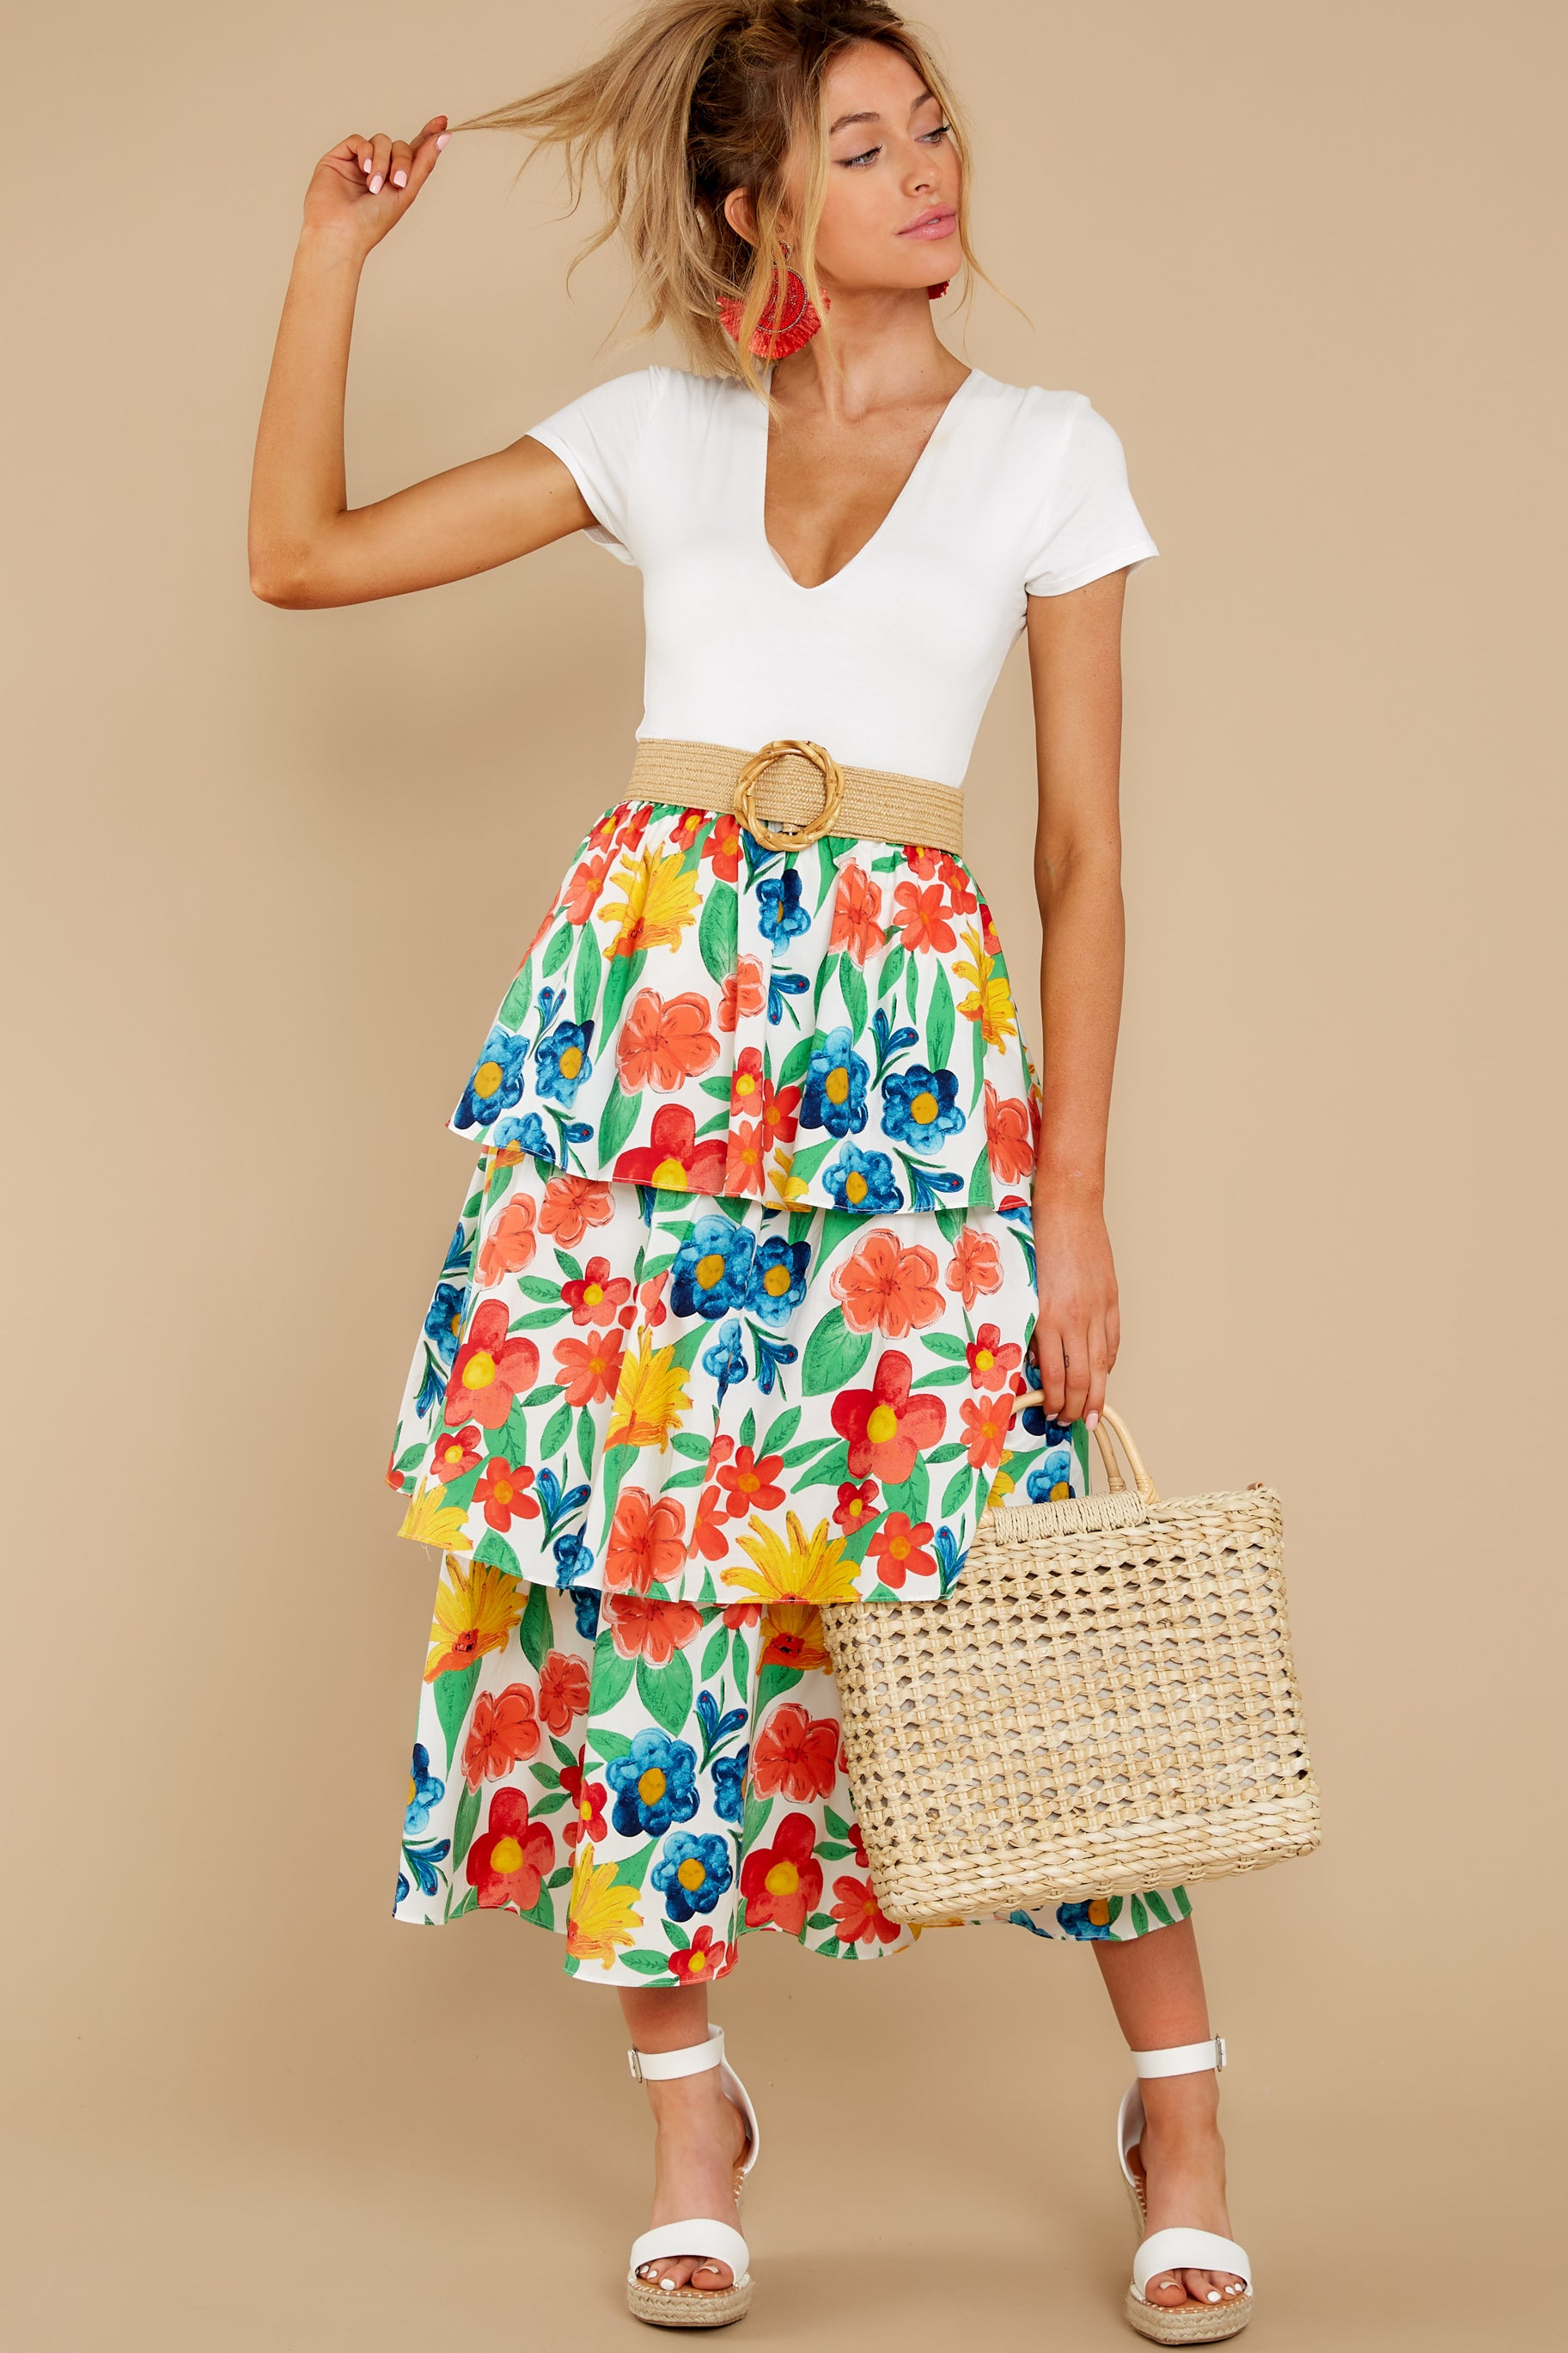 8 On Your Bright Side White Floral Print Midi Skirt at reddress.com